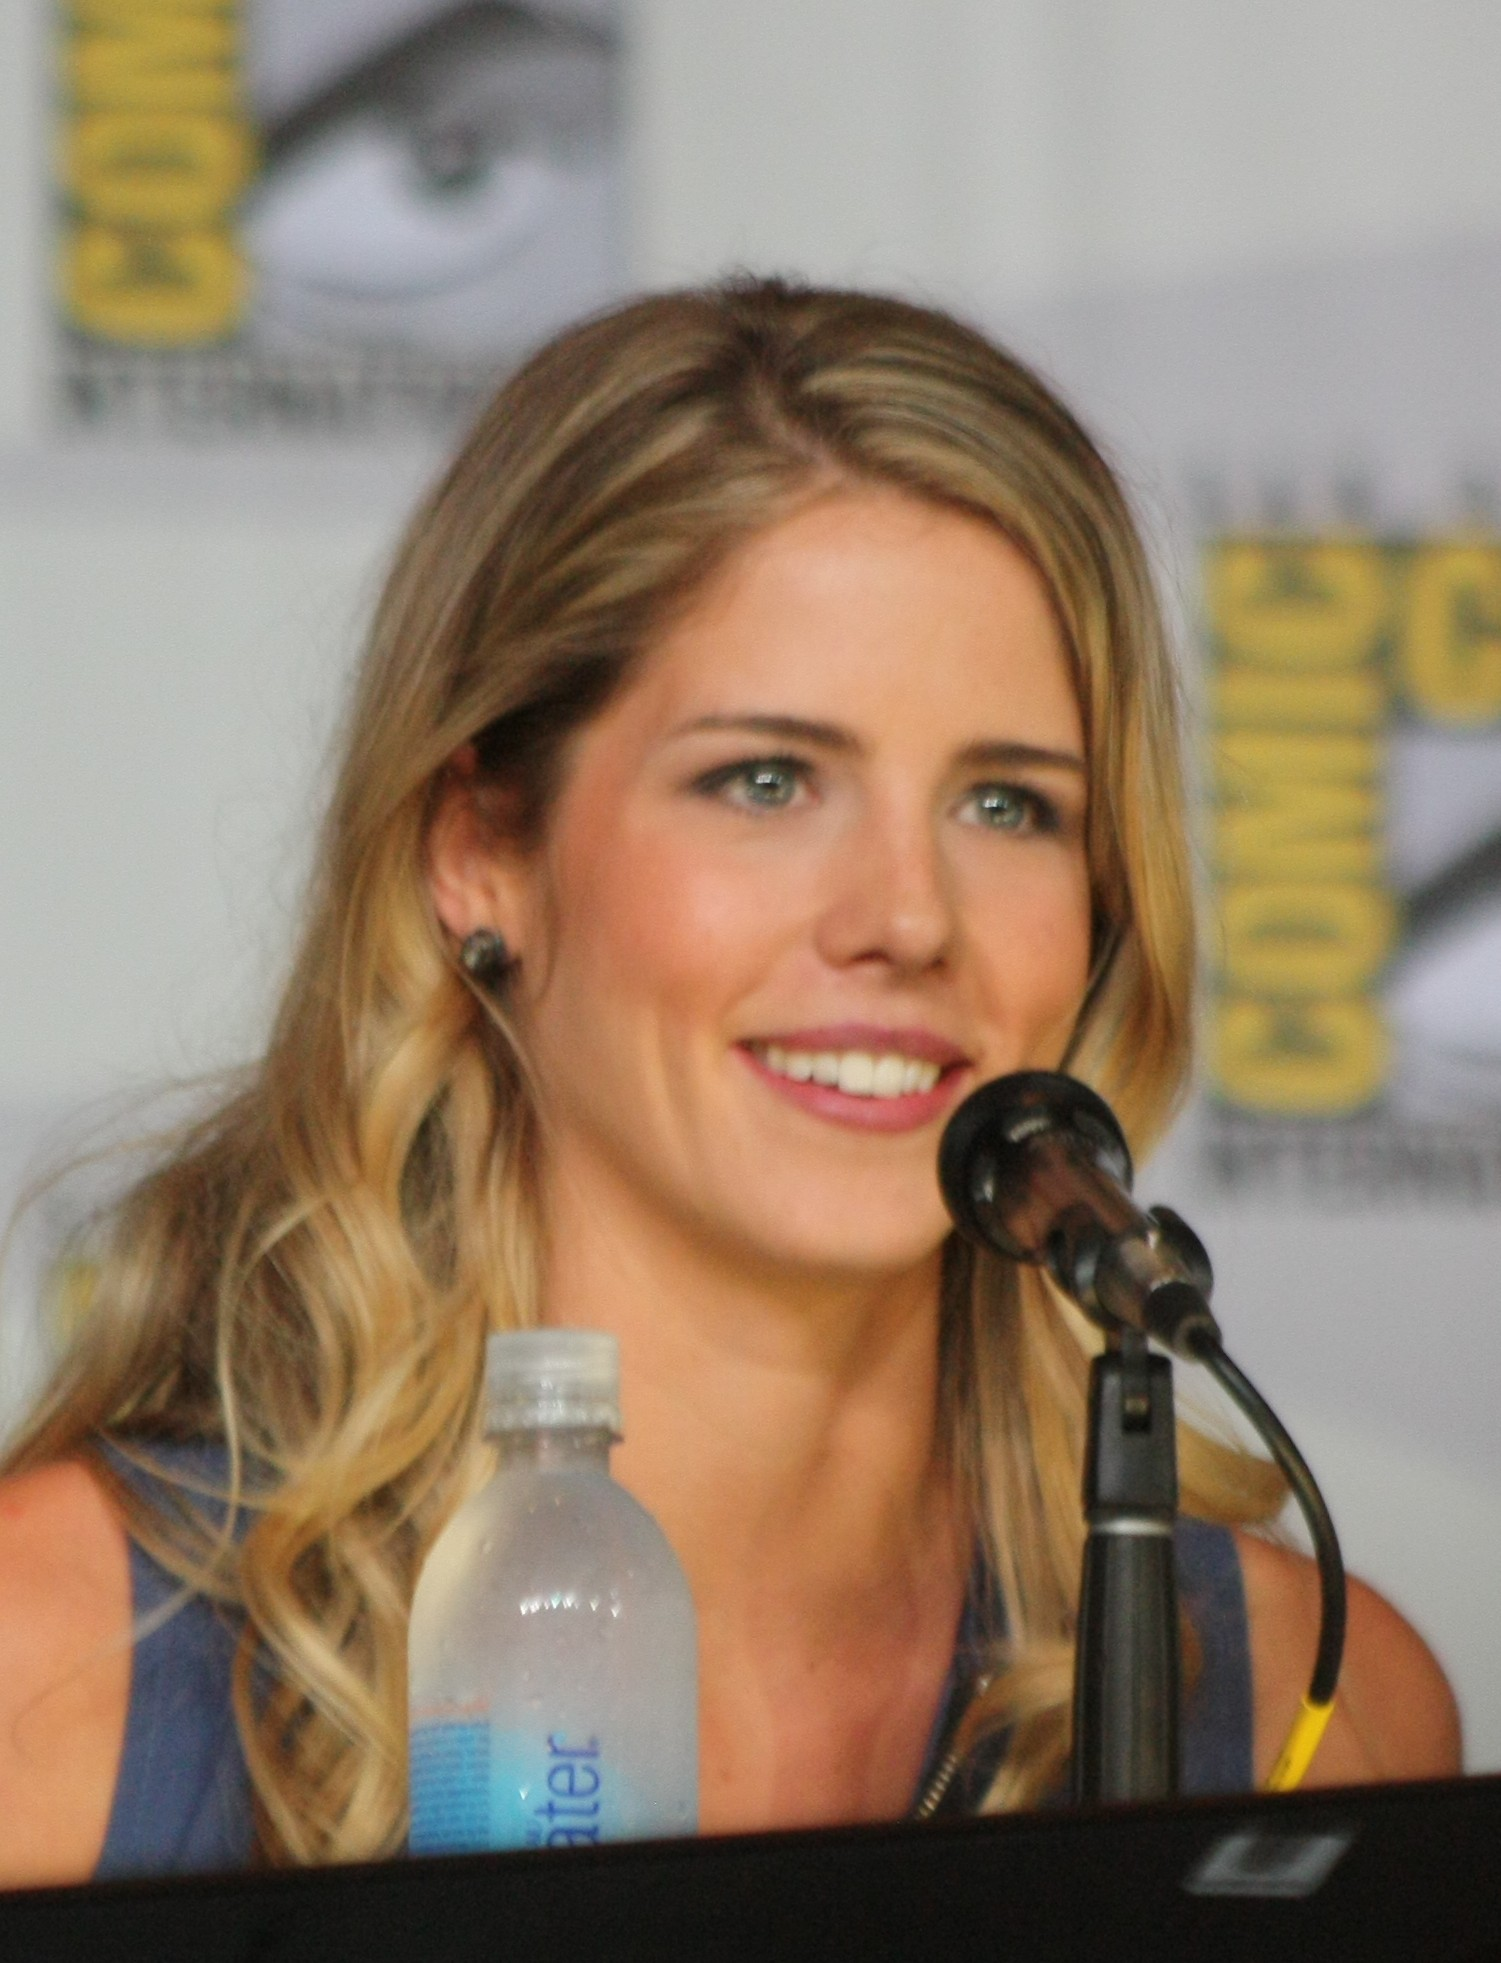 Bett Comic File Emily Bett Rickards At The 2013 Comic Con B Jpg Wikimedia